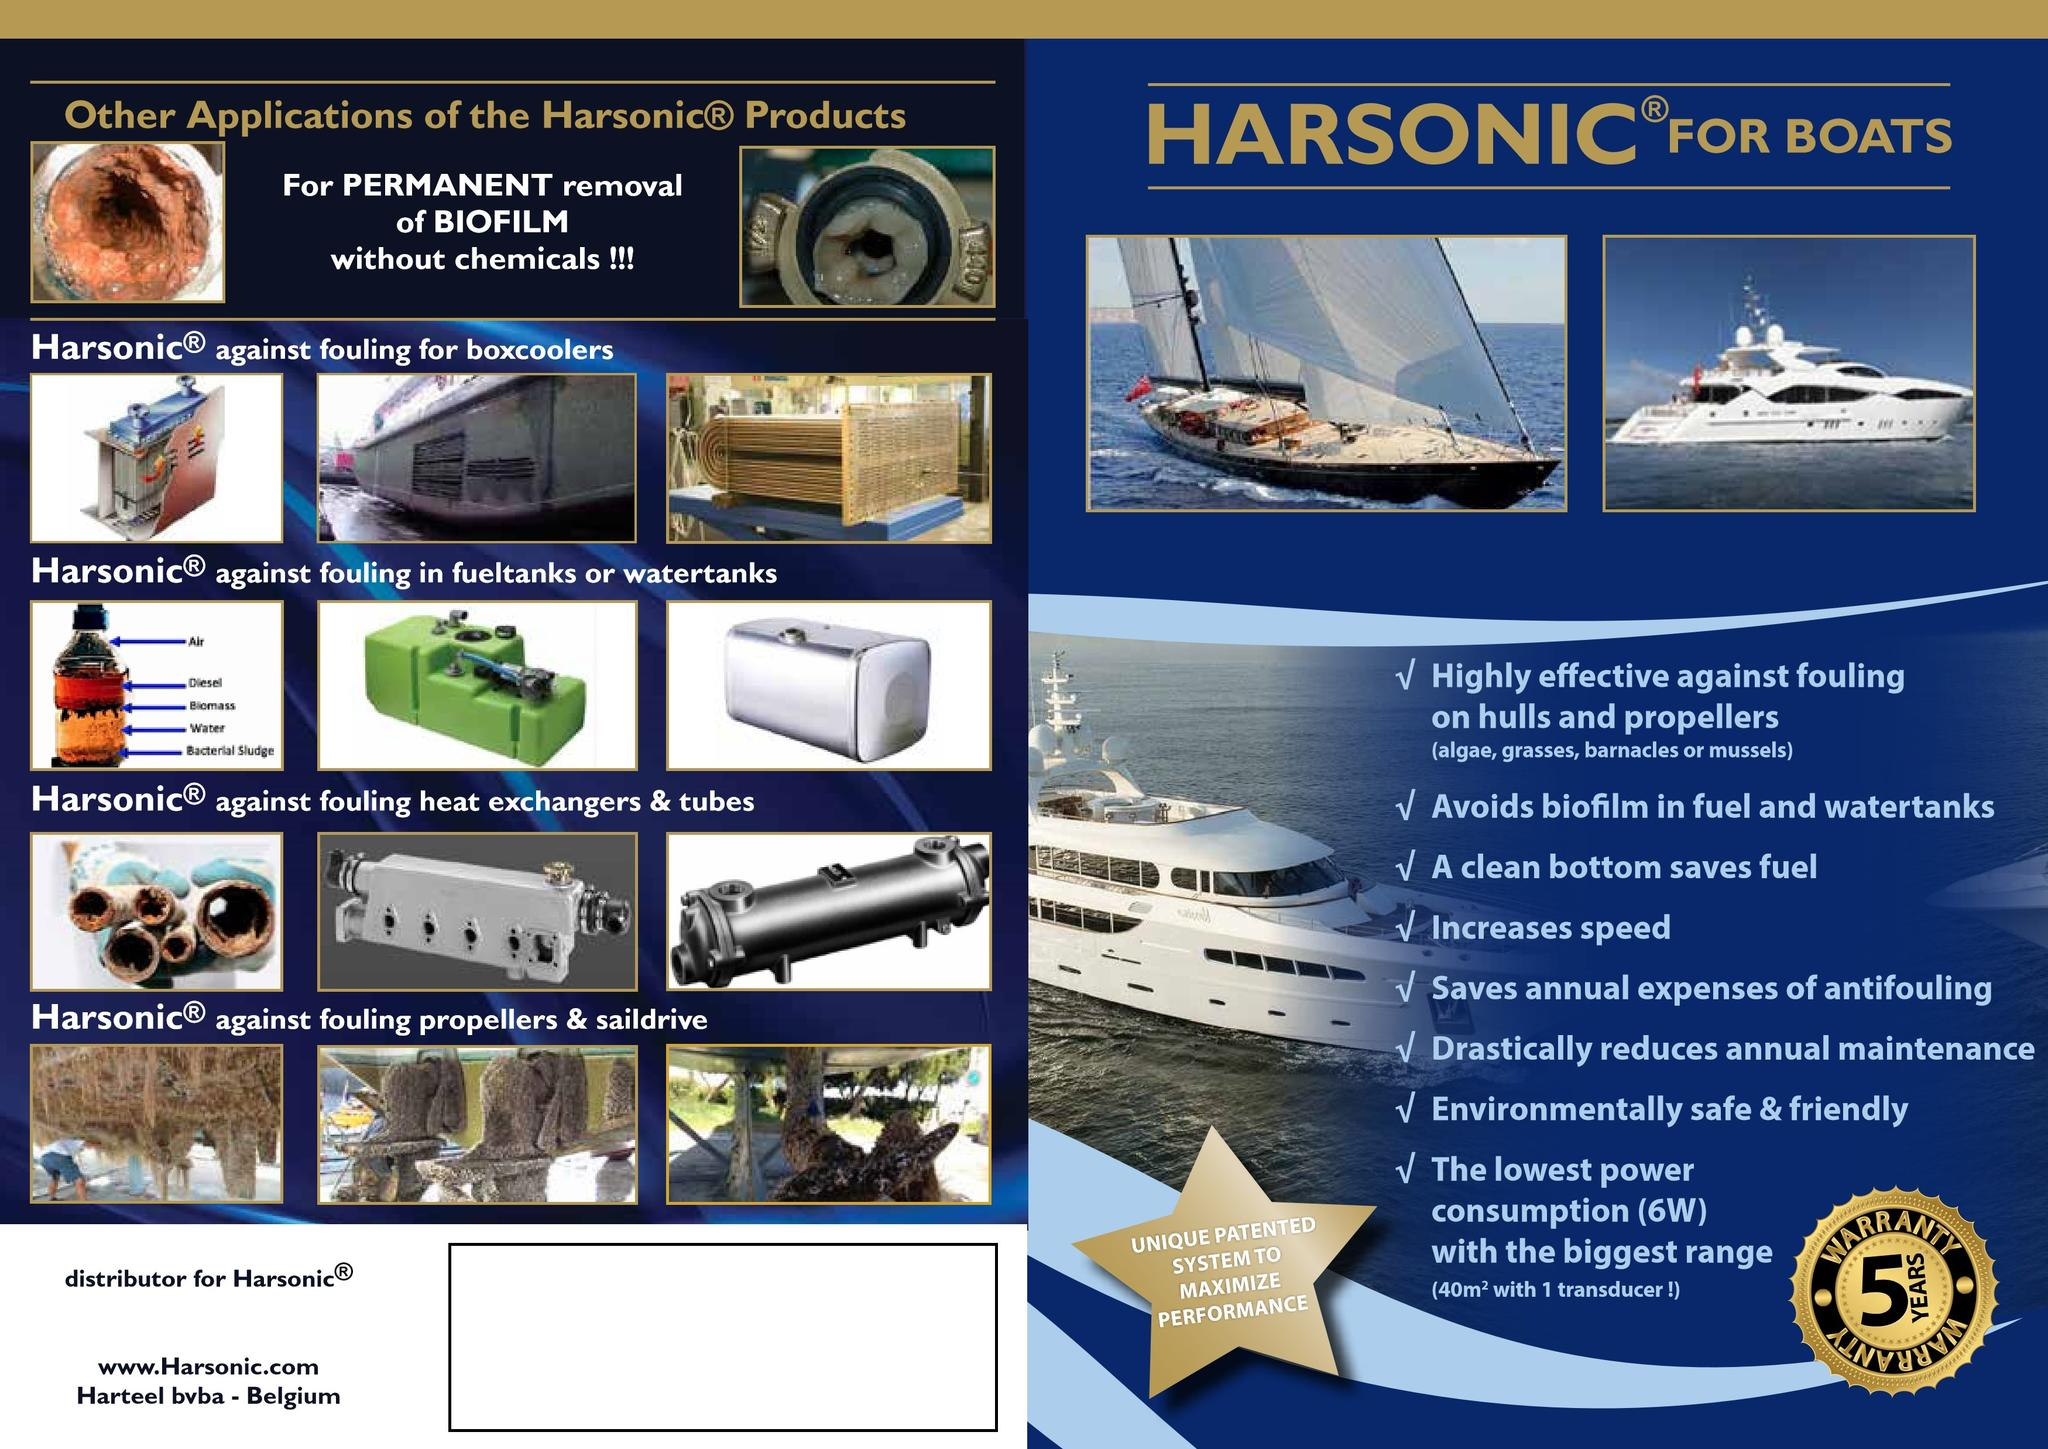 Harsonic pleasure 1